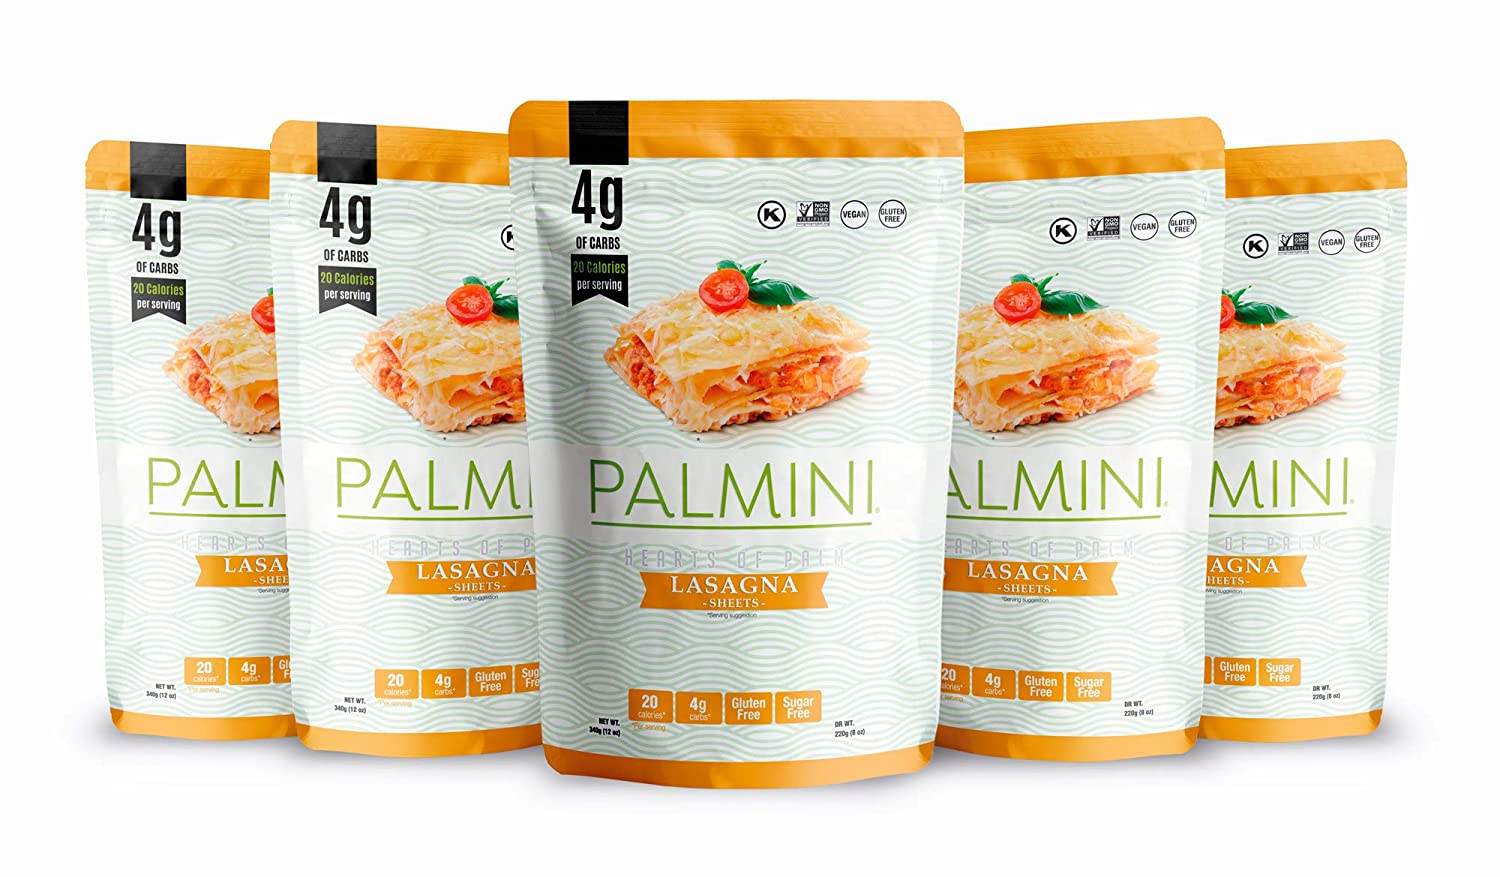 Palmini Low Carb Lasagna | 4g of Carbs | As Seen On Shark Tank | Hearts of Palm Pasta (12 Ounce - Pack of 6)